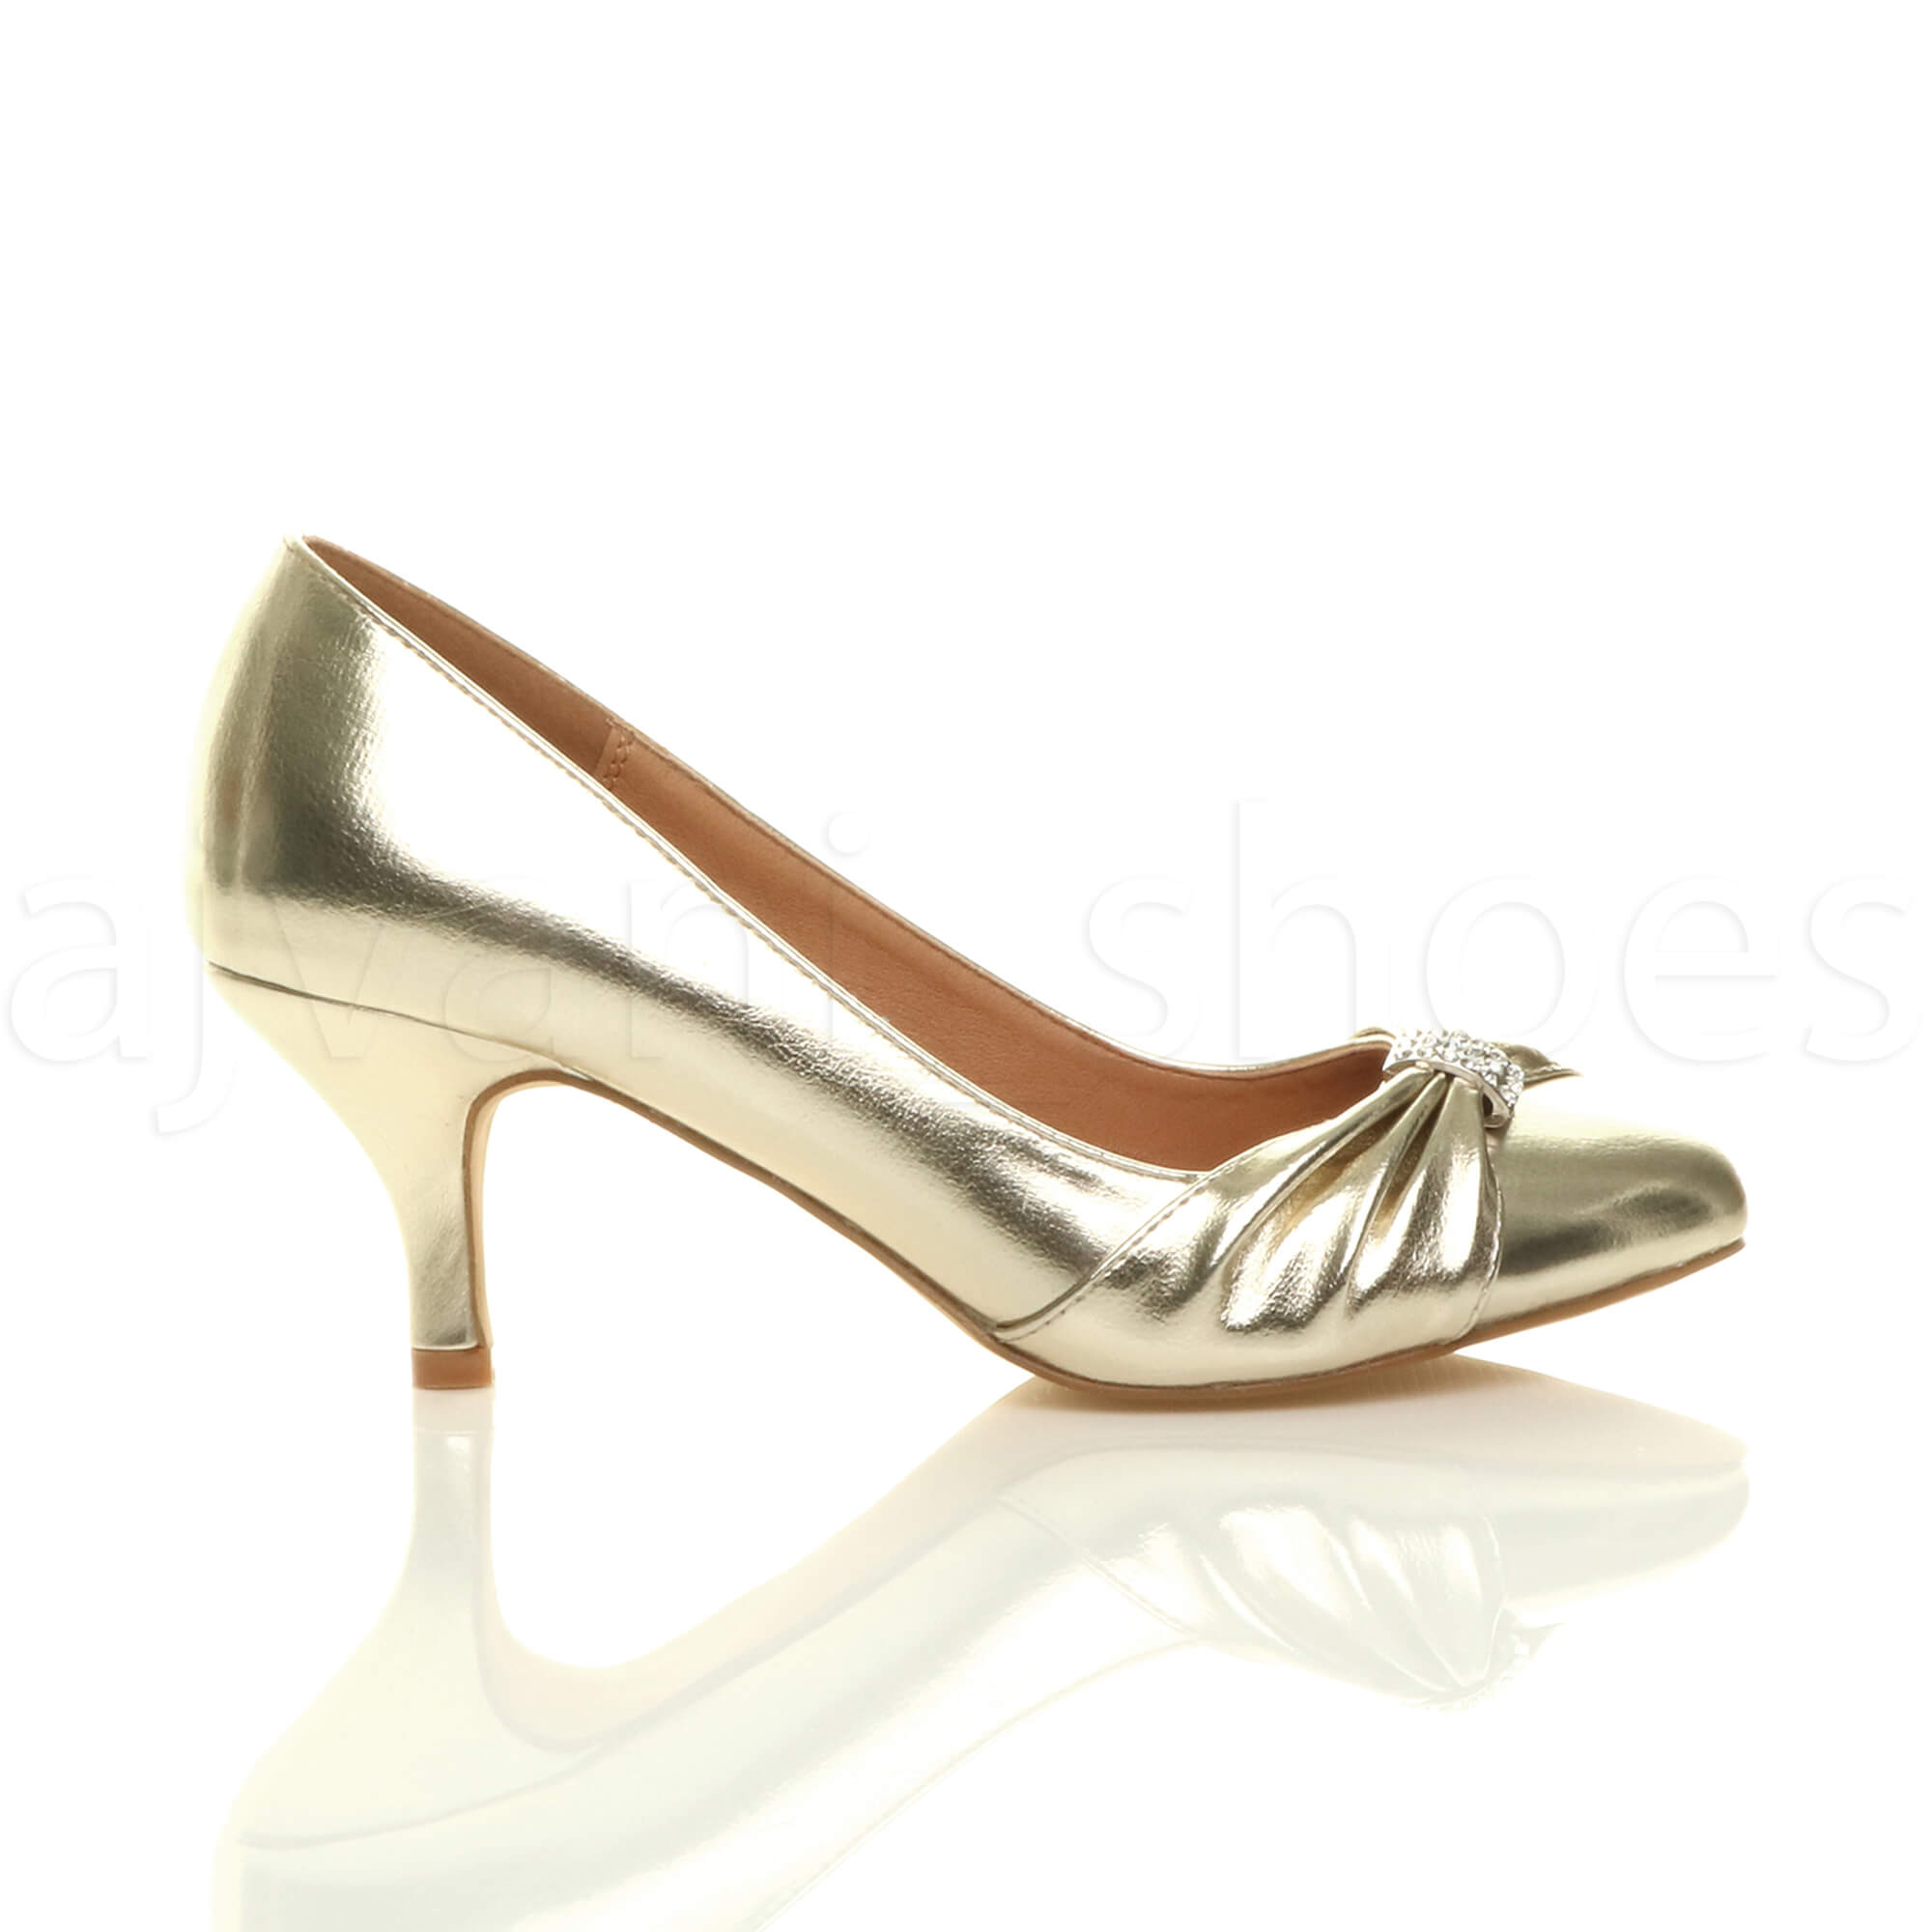 WOMENS-LADIES-MID-HEEL-RUCHED-DIAMANTE-WEDDING-PROM-EVENING-COURT-SHOES-SIZE thumbnail 27